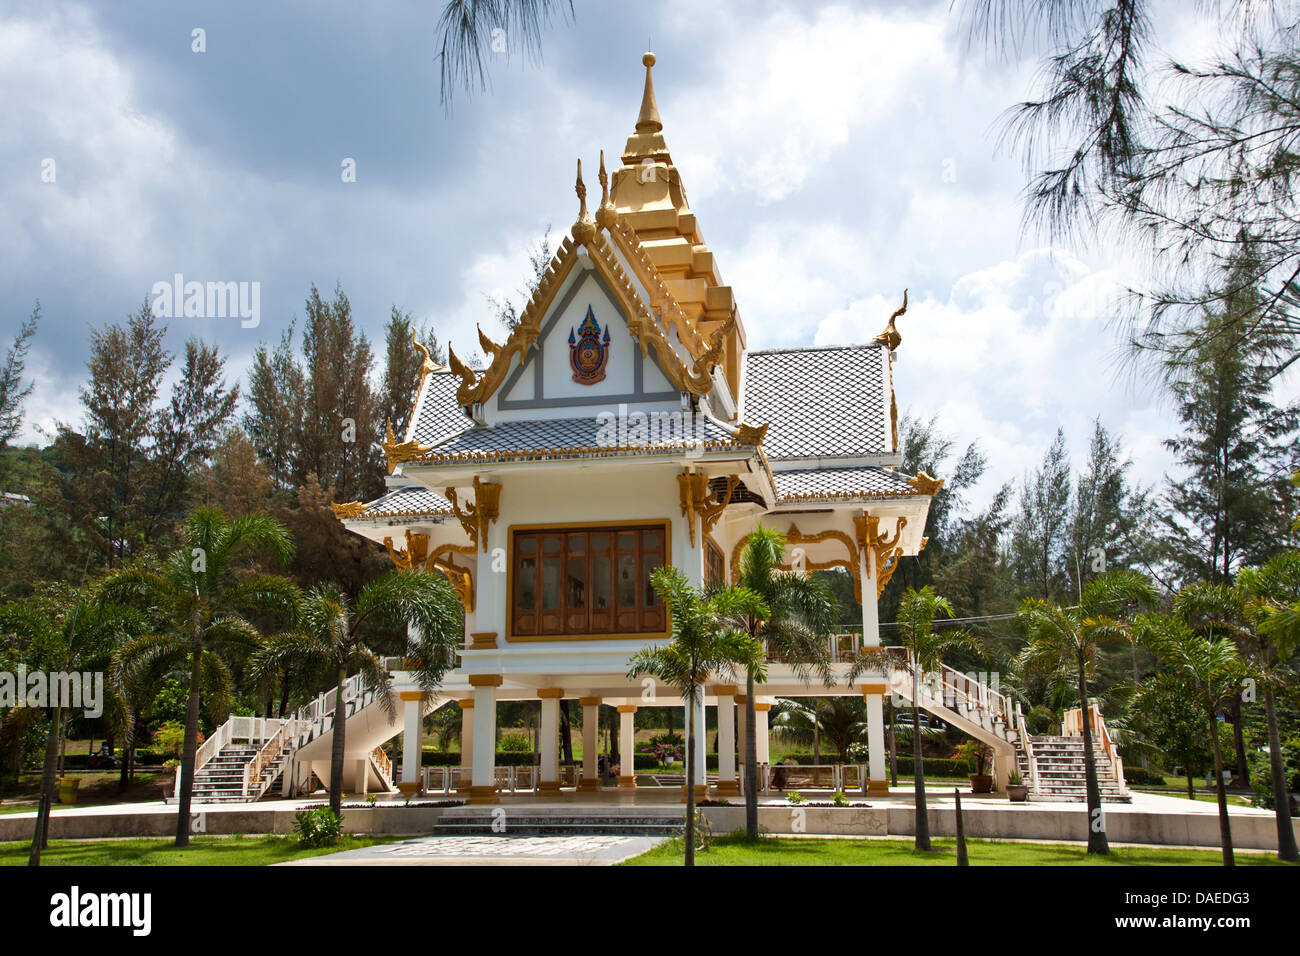 buddah temple, pagoda, Thailand, Phuket Stock Photo